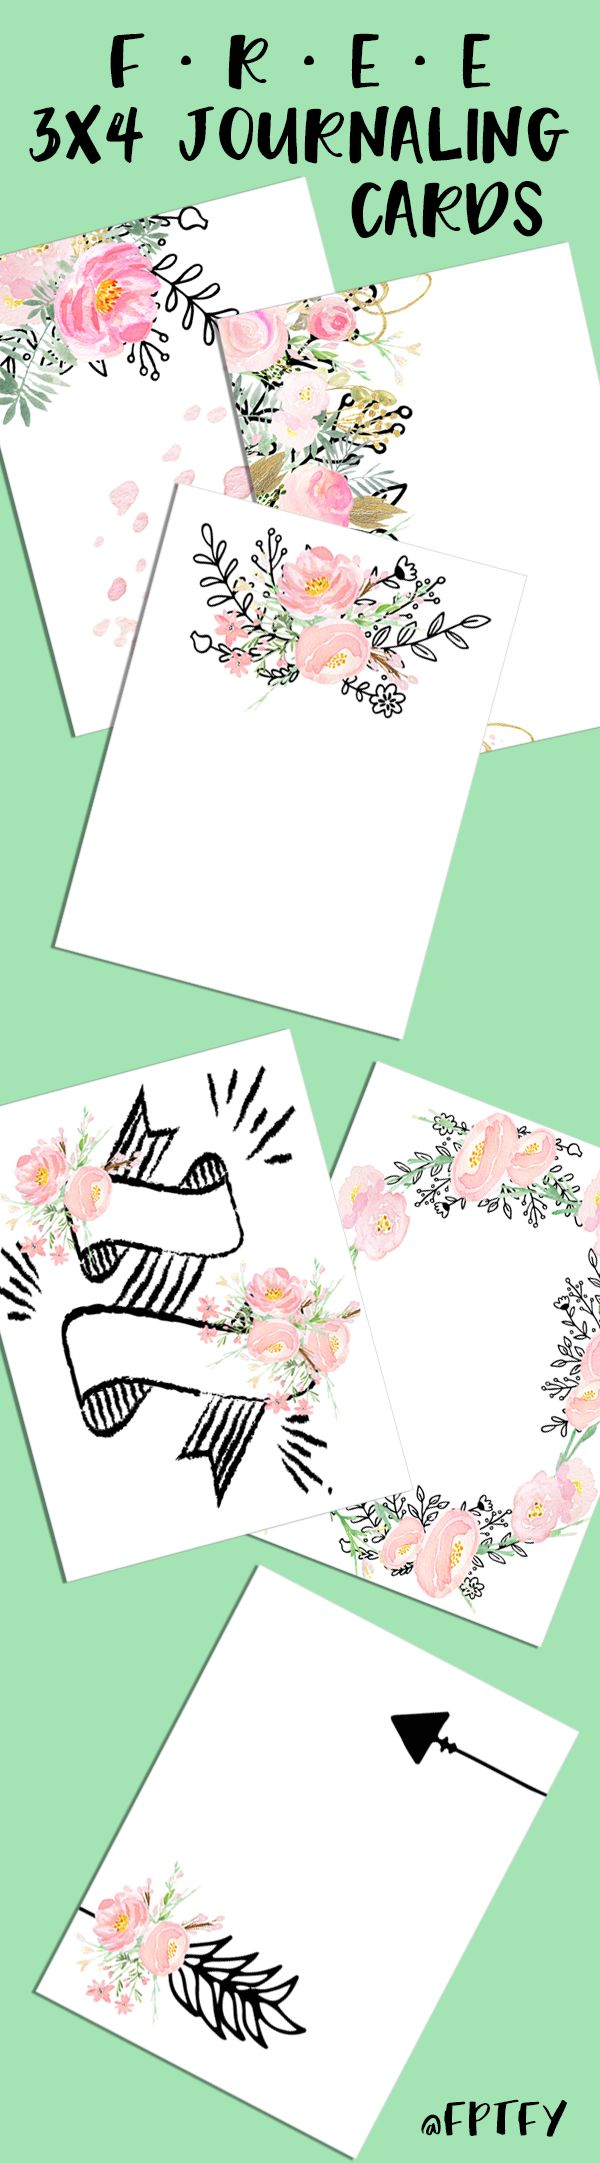 Free 3x4 journaling card printables